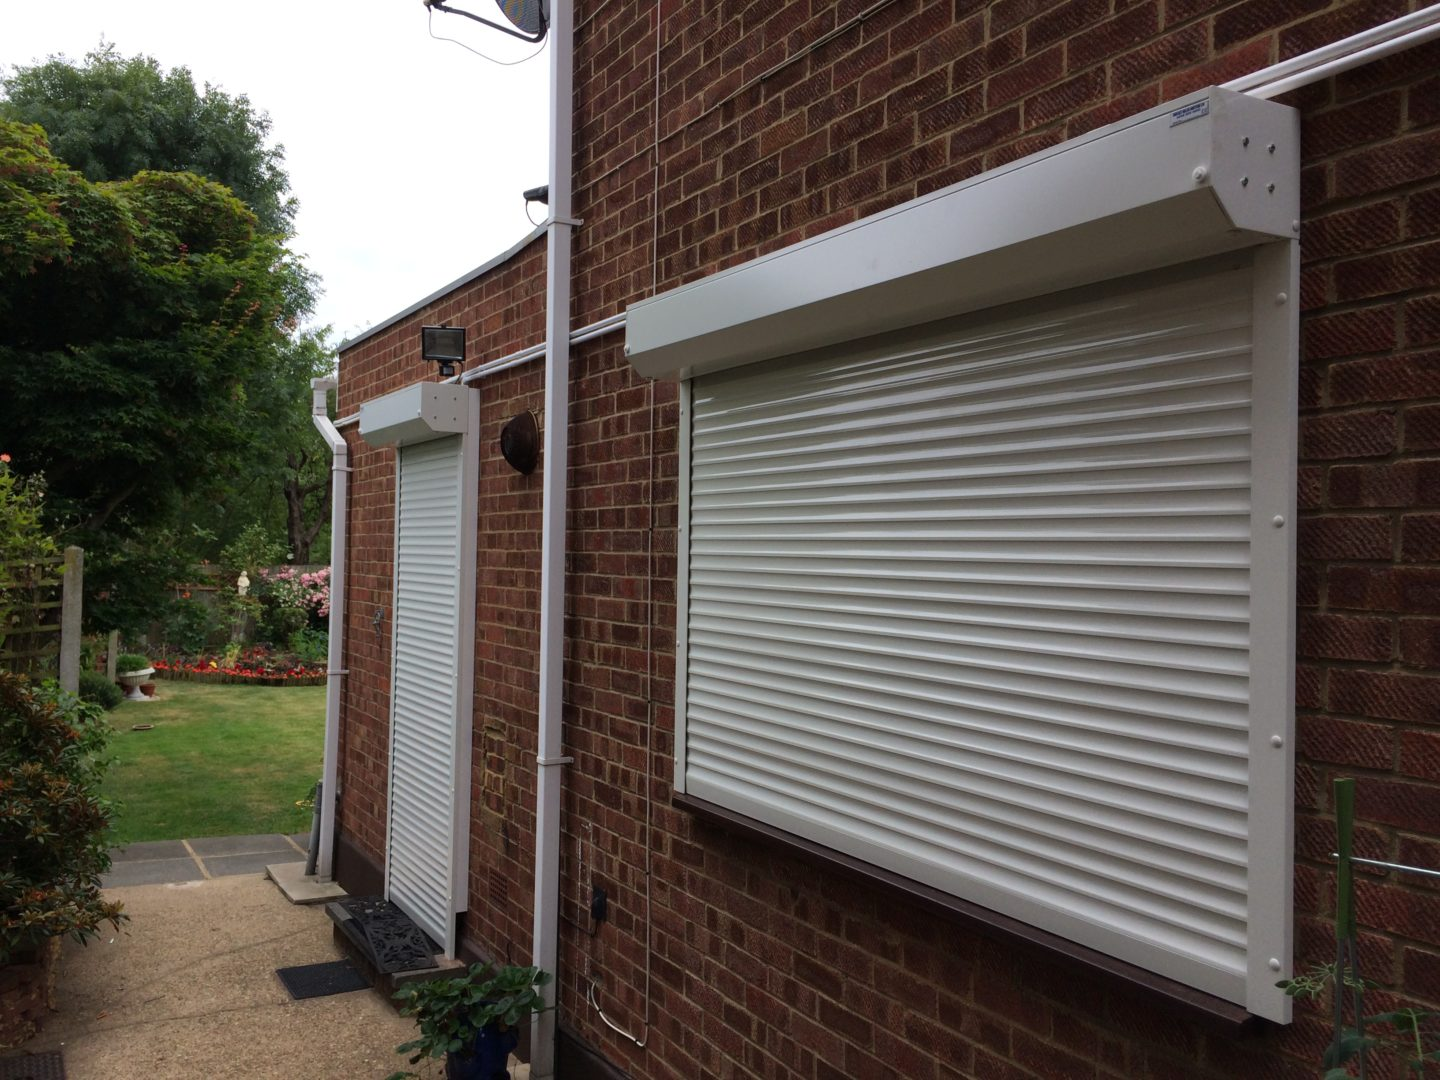 Home Security Shutters | Contact Roller Shutters